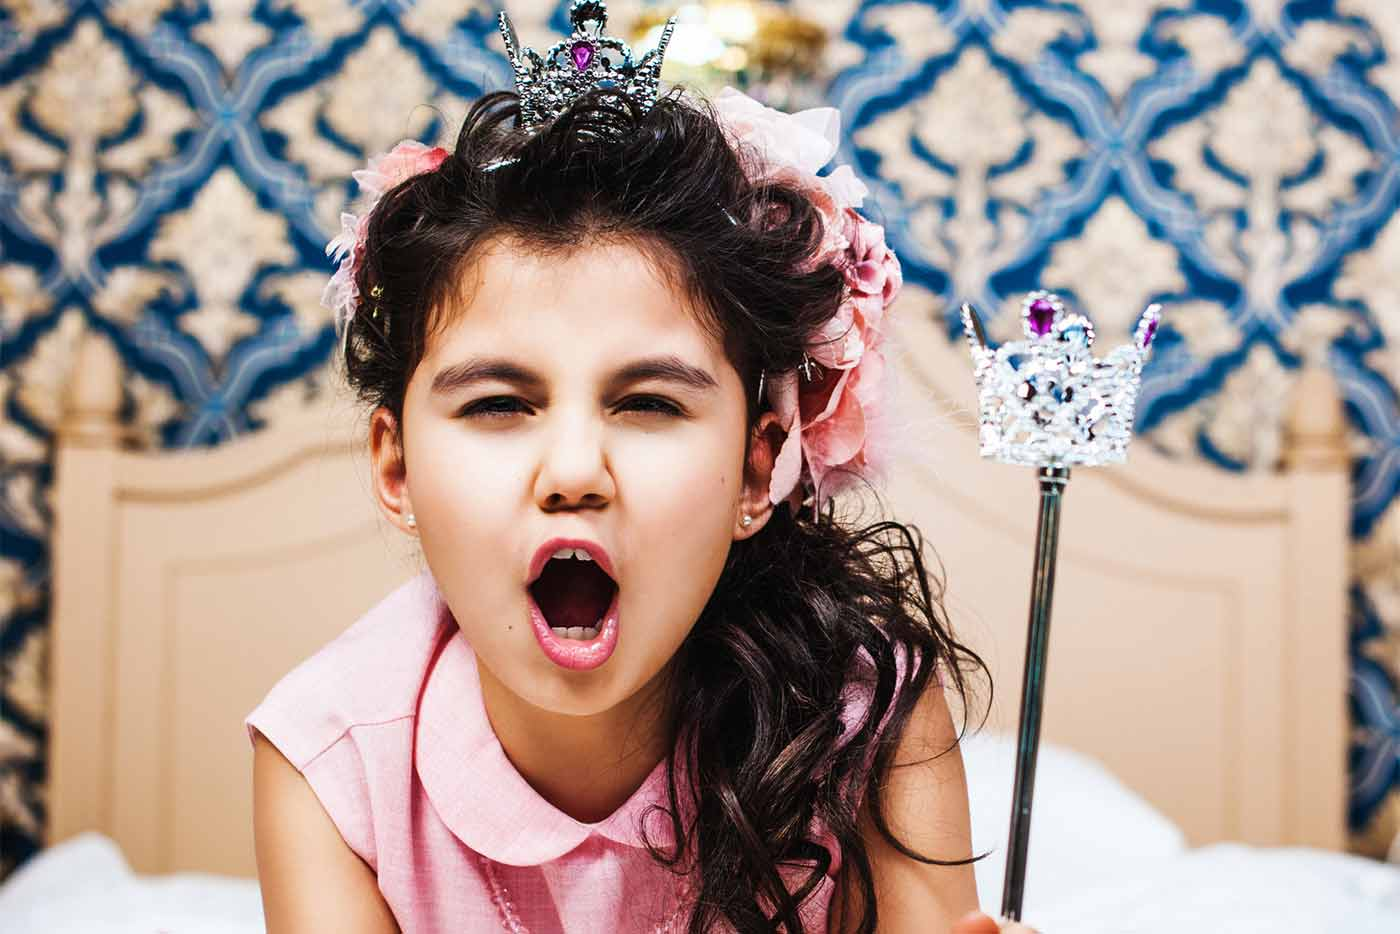 Warning signs of a spoiled child